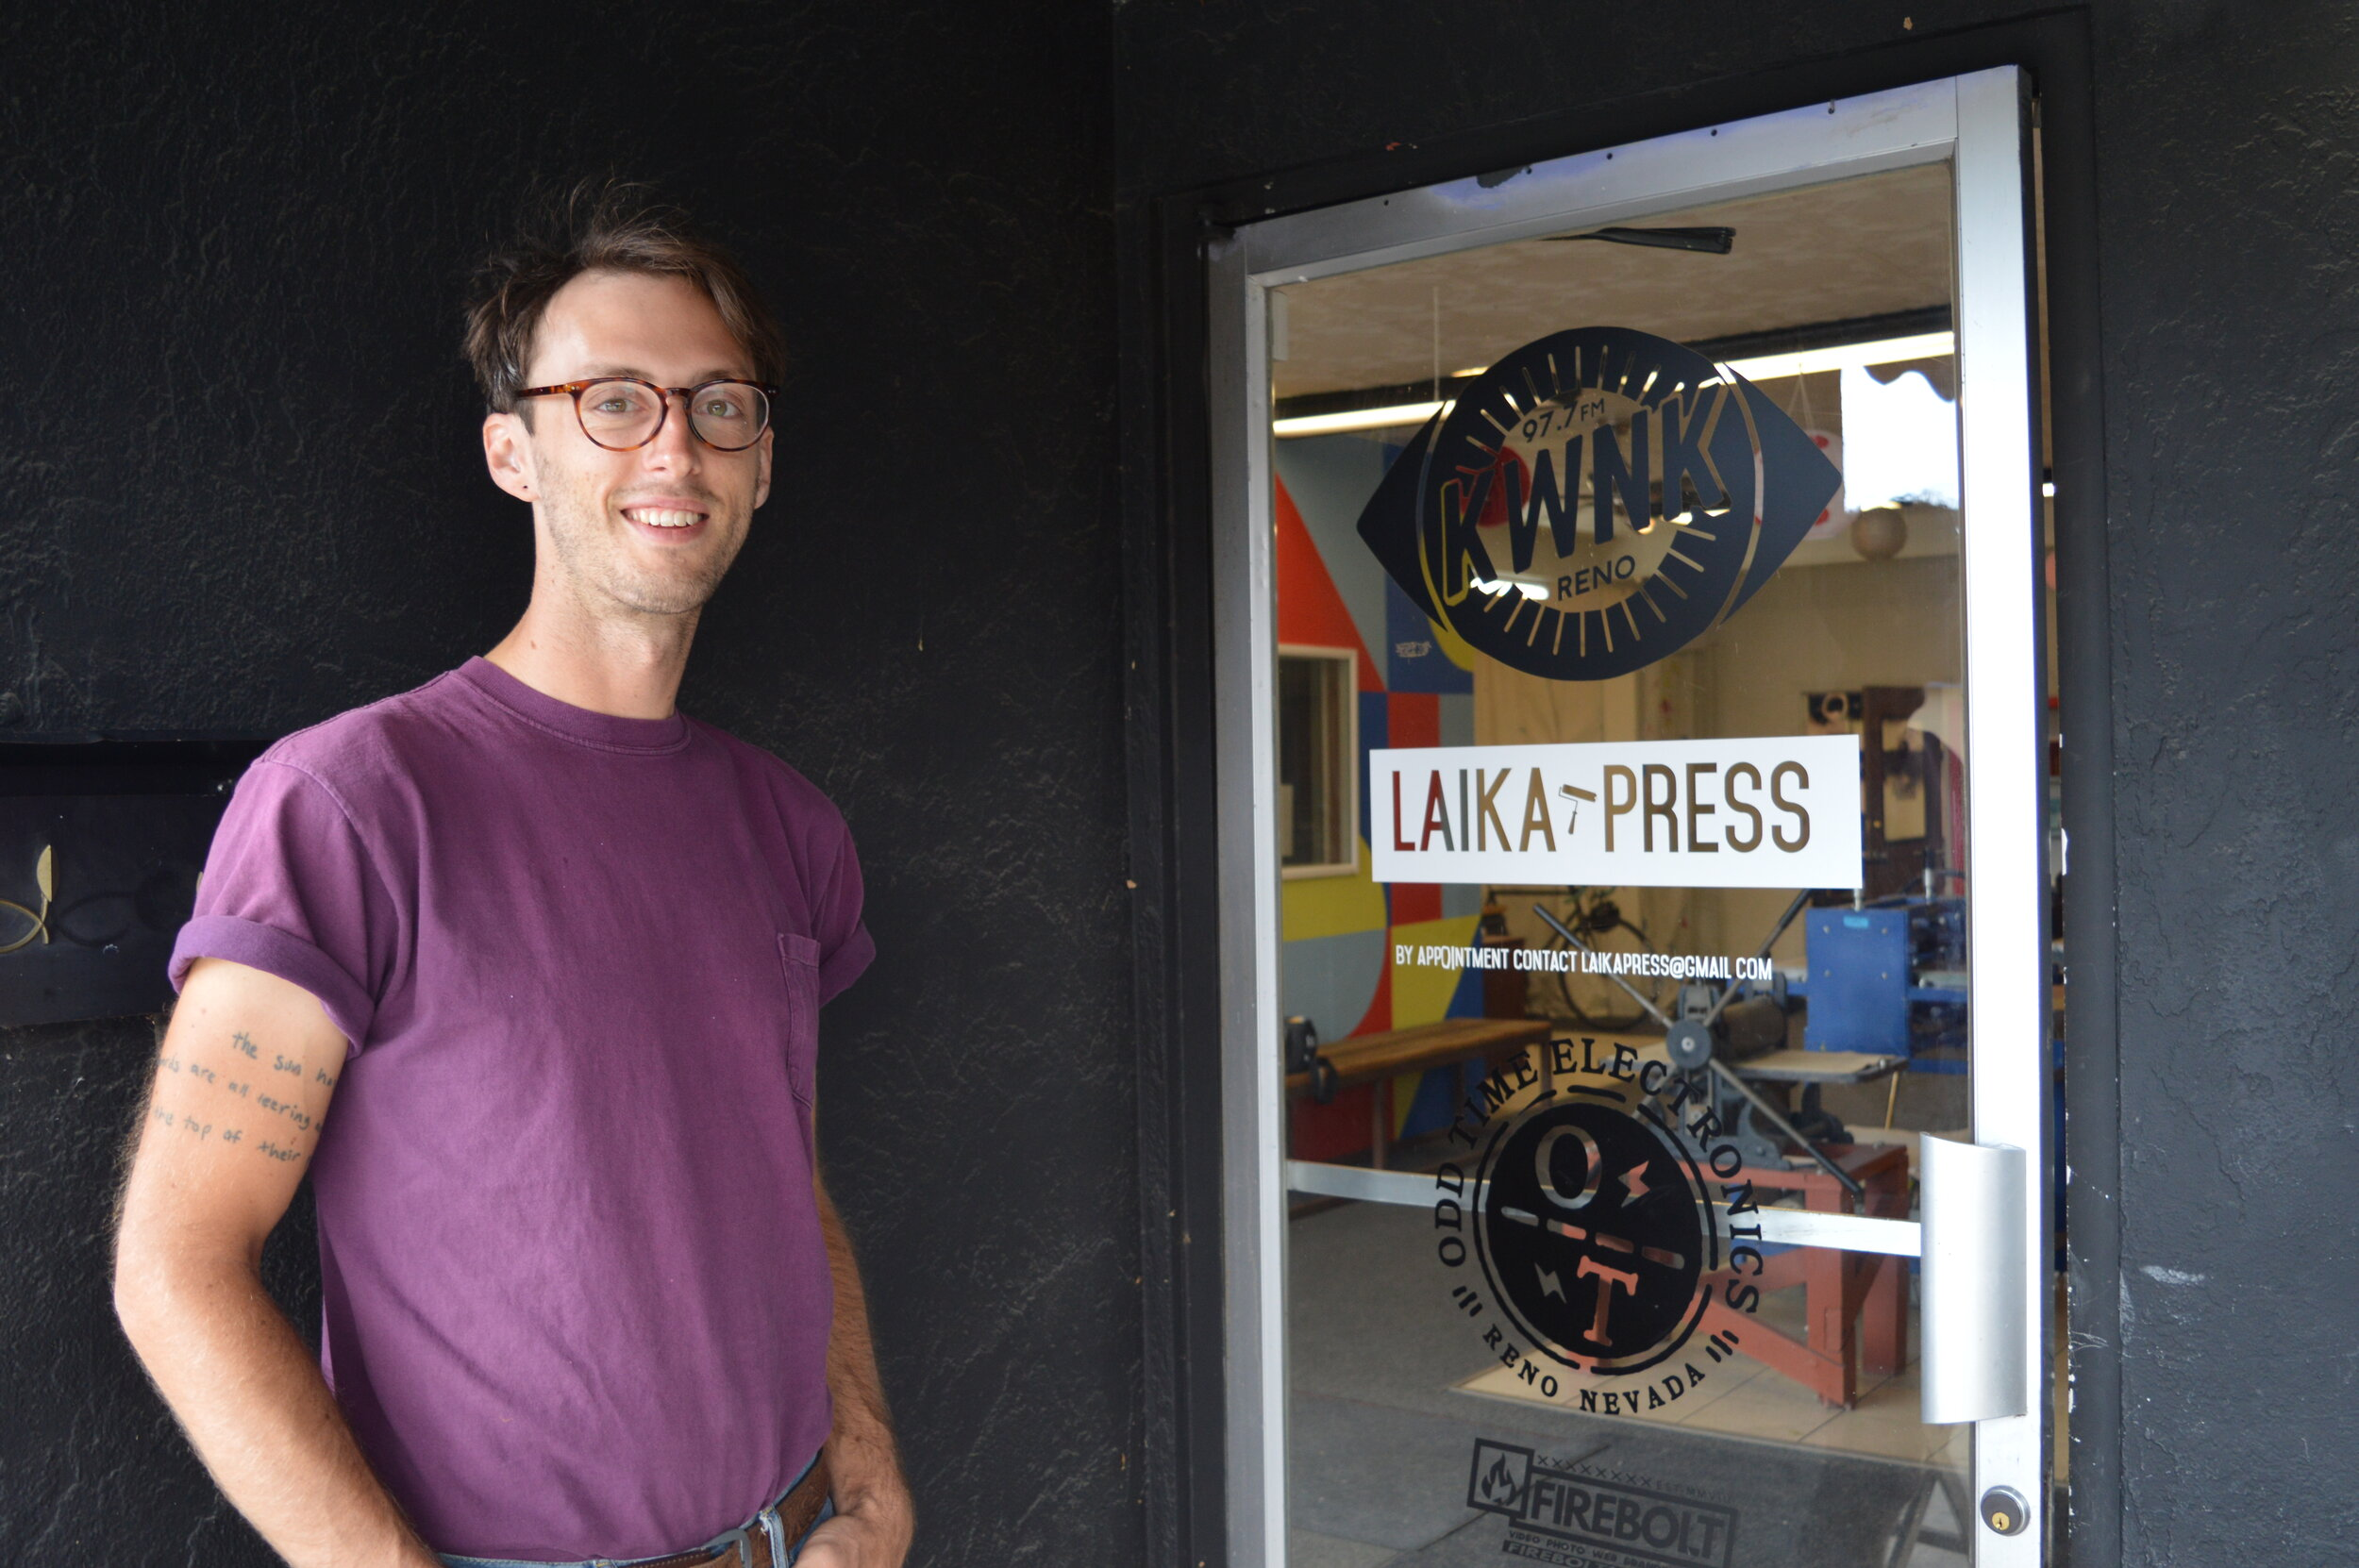 Nathaniel Benjamin, a graduate of UNR, co-founded Laika Press when he felt a need for publicly-accessible printmaking equipment in Reno. The Wells Ave. location which has been operating for several years now provides printmaking services, workshops, different membership options and occasional zine printing parties.